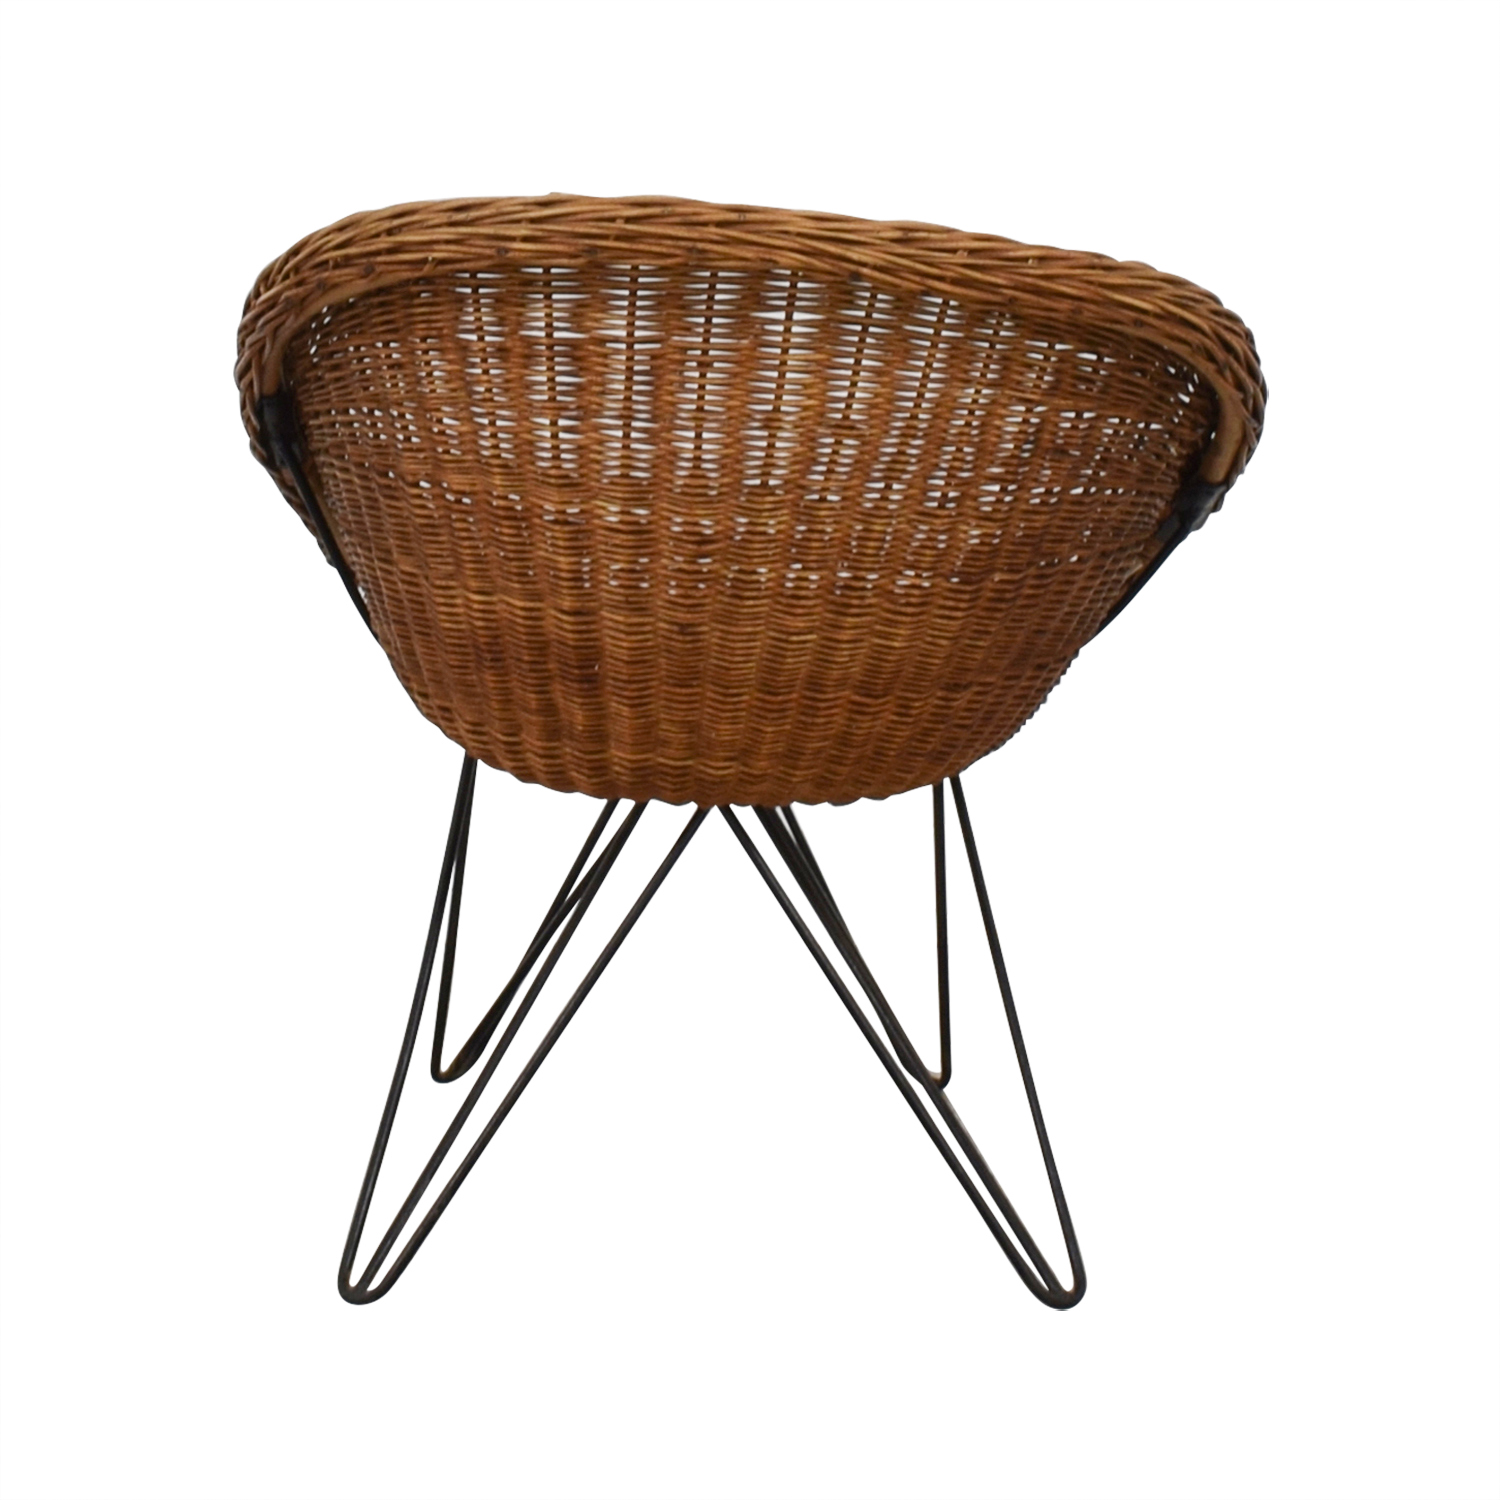 Wicker Chair with Metal Legs used